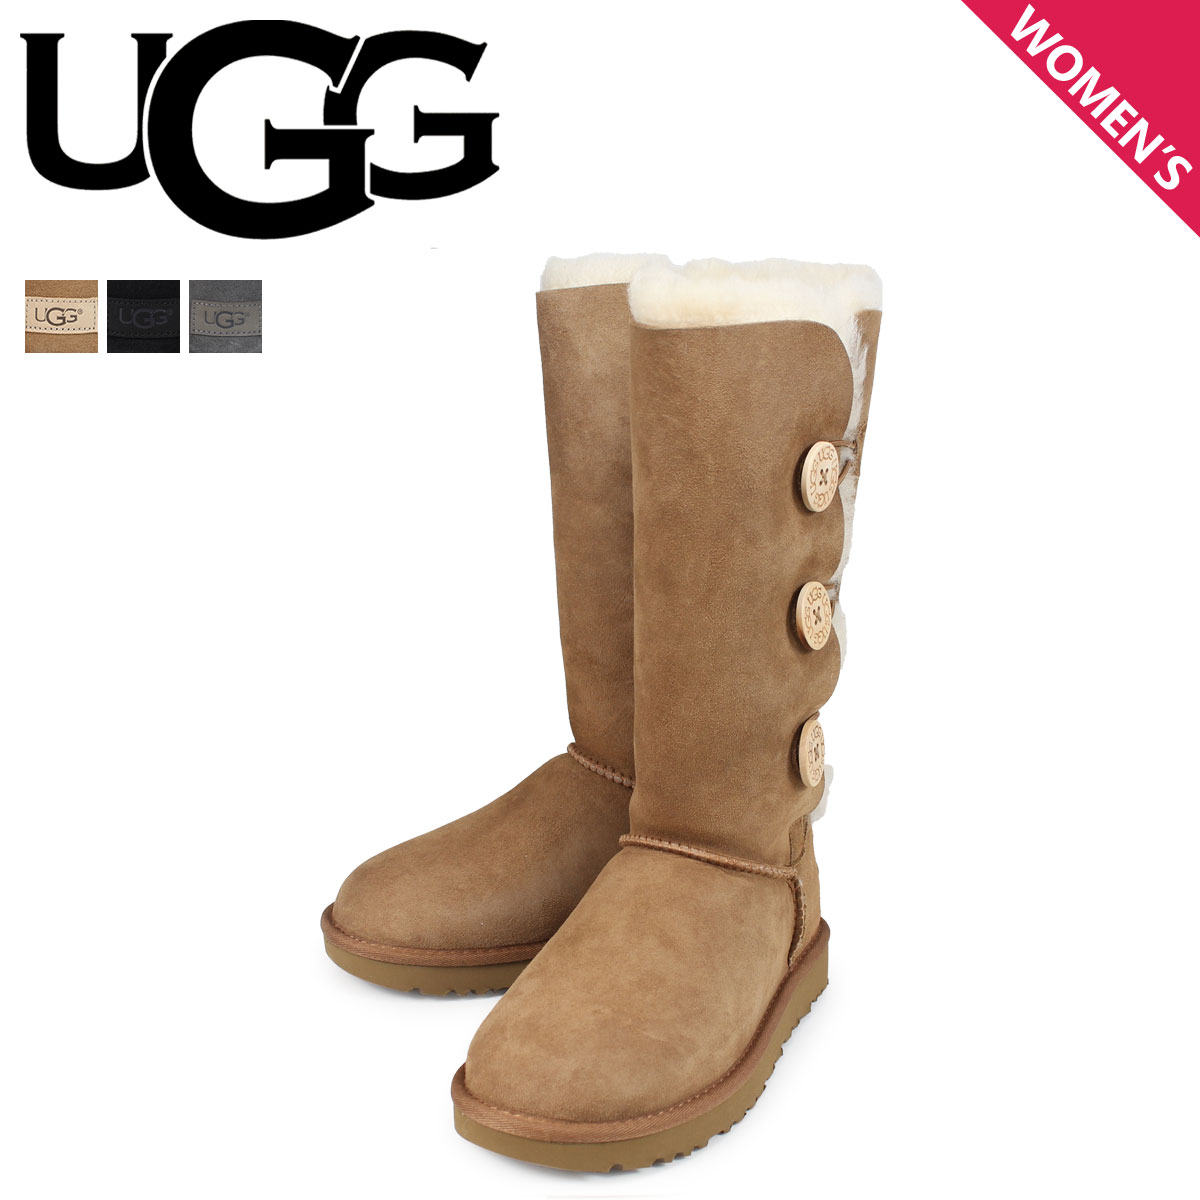 d406b4acc49 アグ UGG mouton boots Bailey button 2 Lady's WOMENS BAILEY BUTTON TRIPLET II  1016227